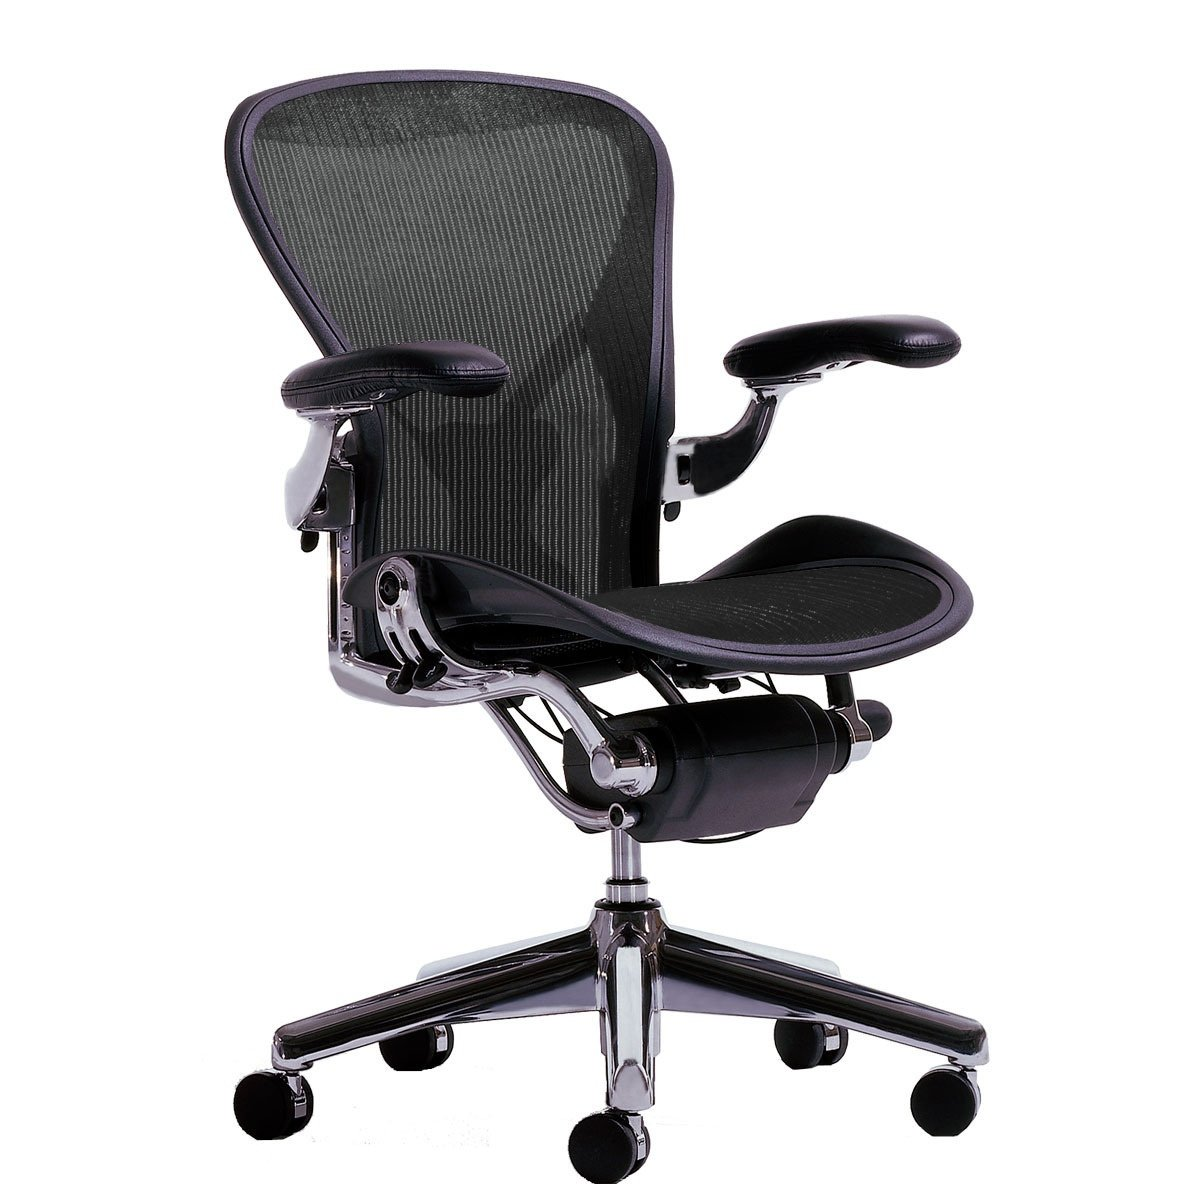 herman miller office chair alternative cast aluminum patio chairs what is the cheapest way to get an aeron quora extremely high quality with a lot of same features at under 200 price point hands down my recommendation for